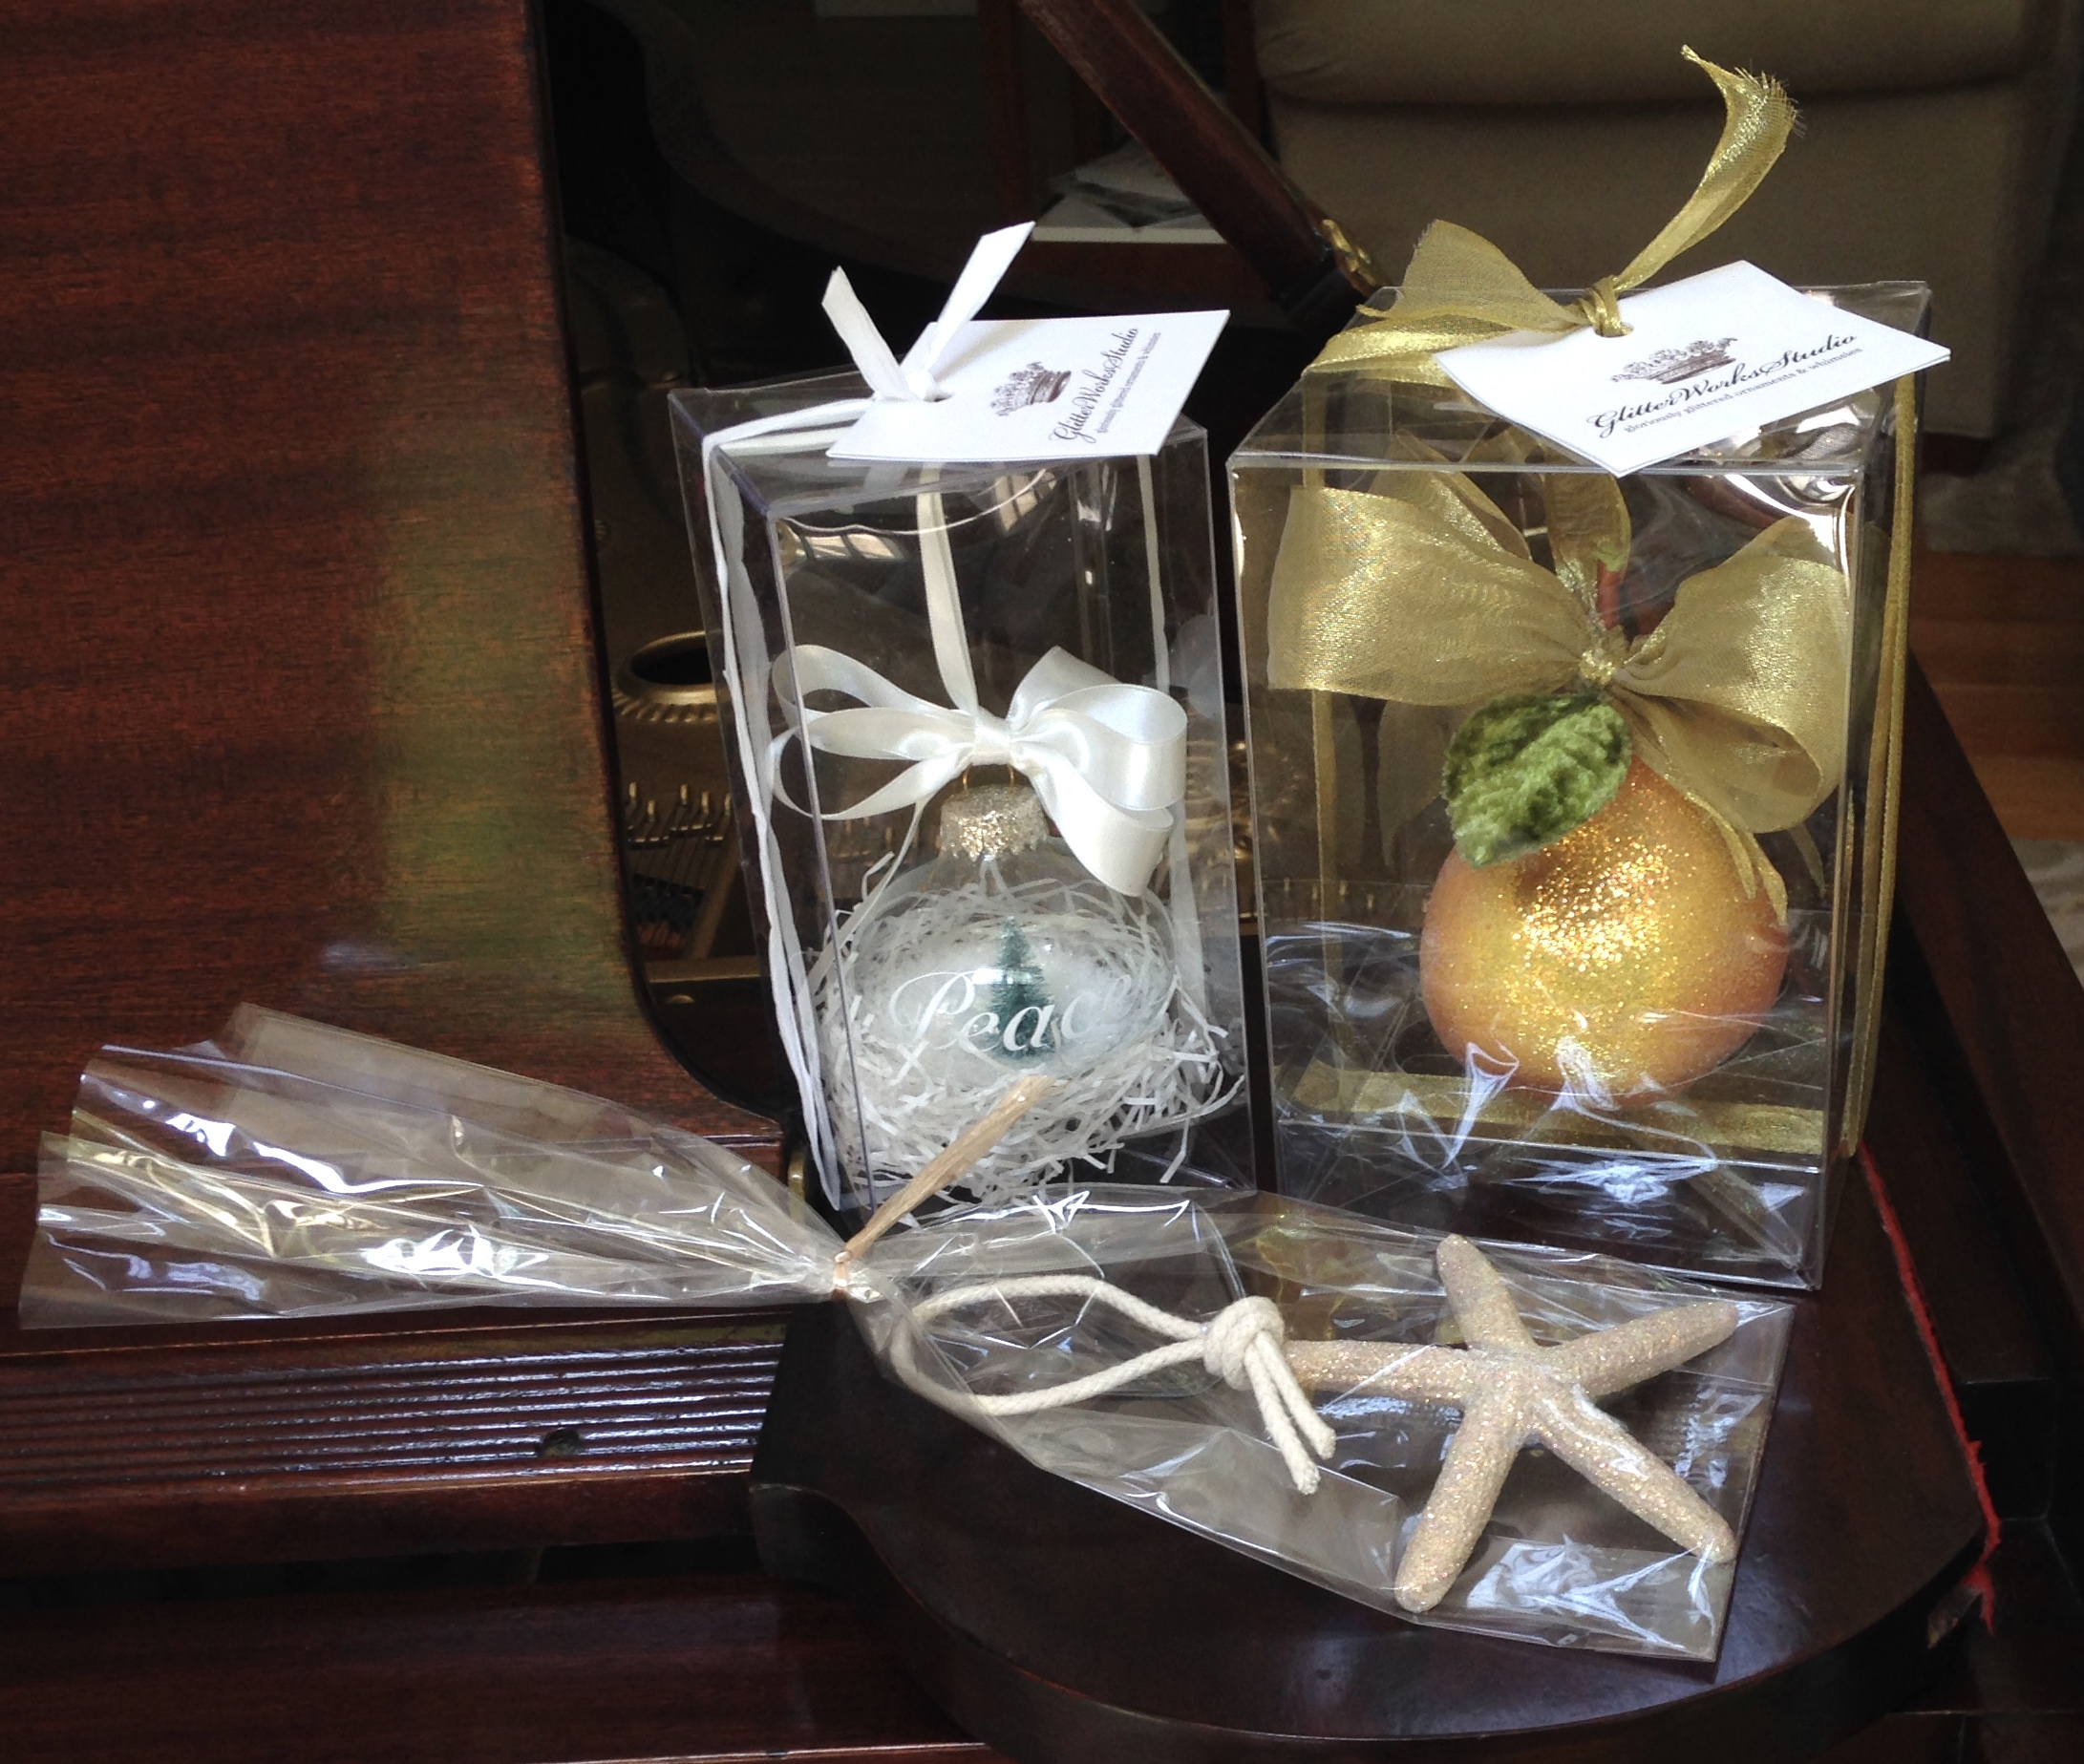 Peace Orb, Golden Pear and SeaStar